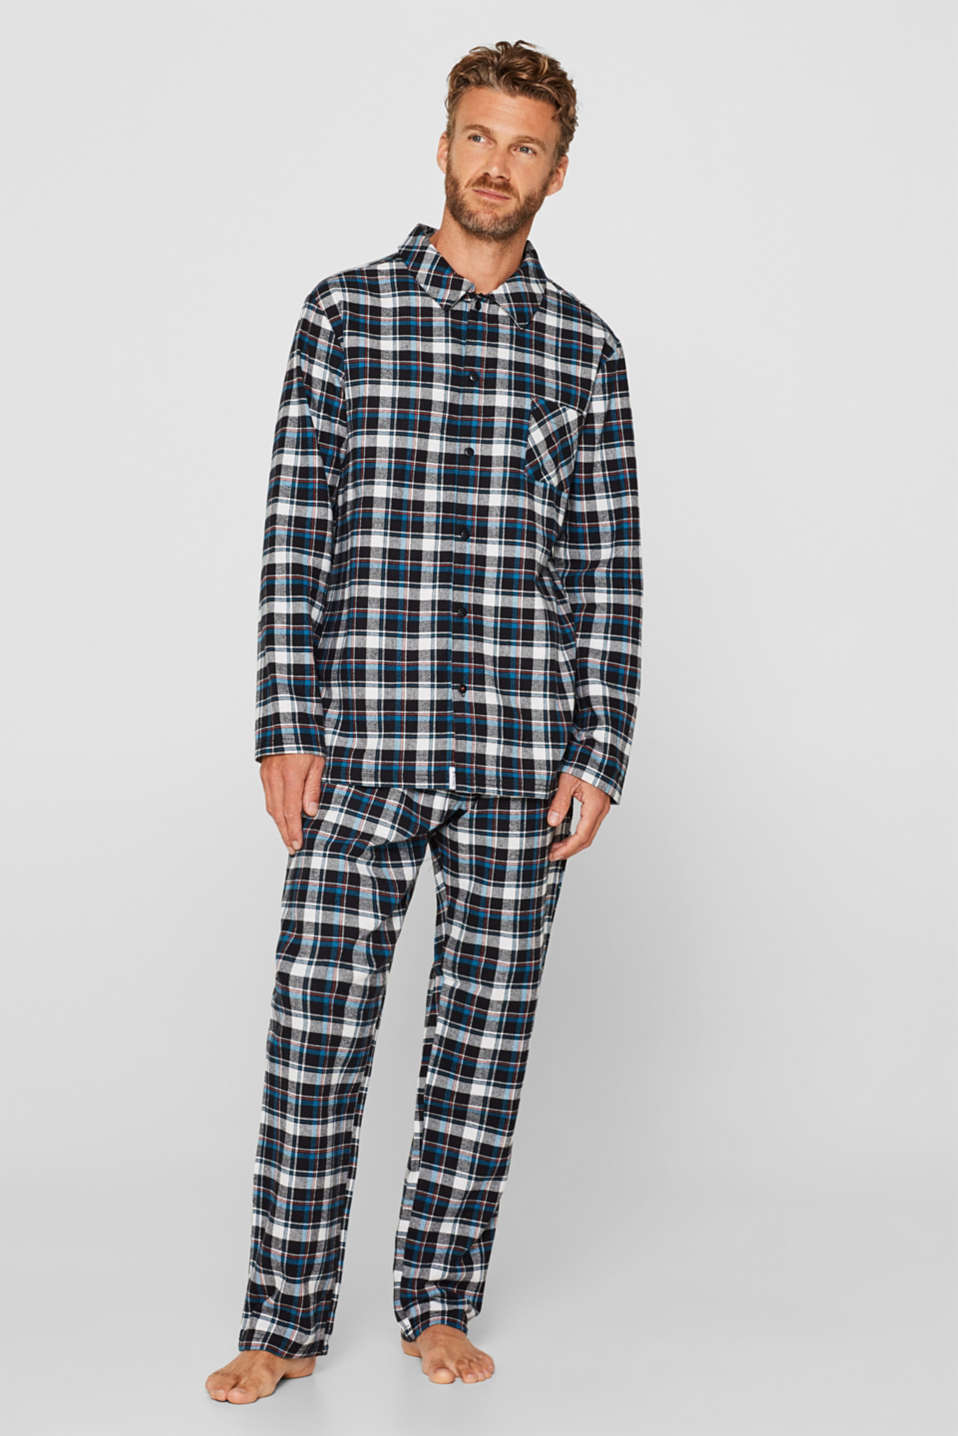 Flannel pyjamas, 100% cotton